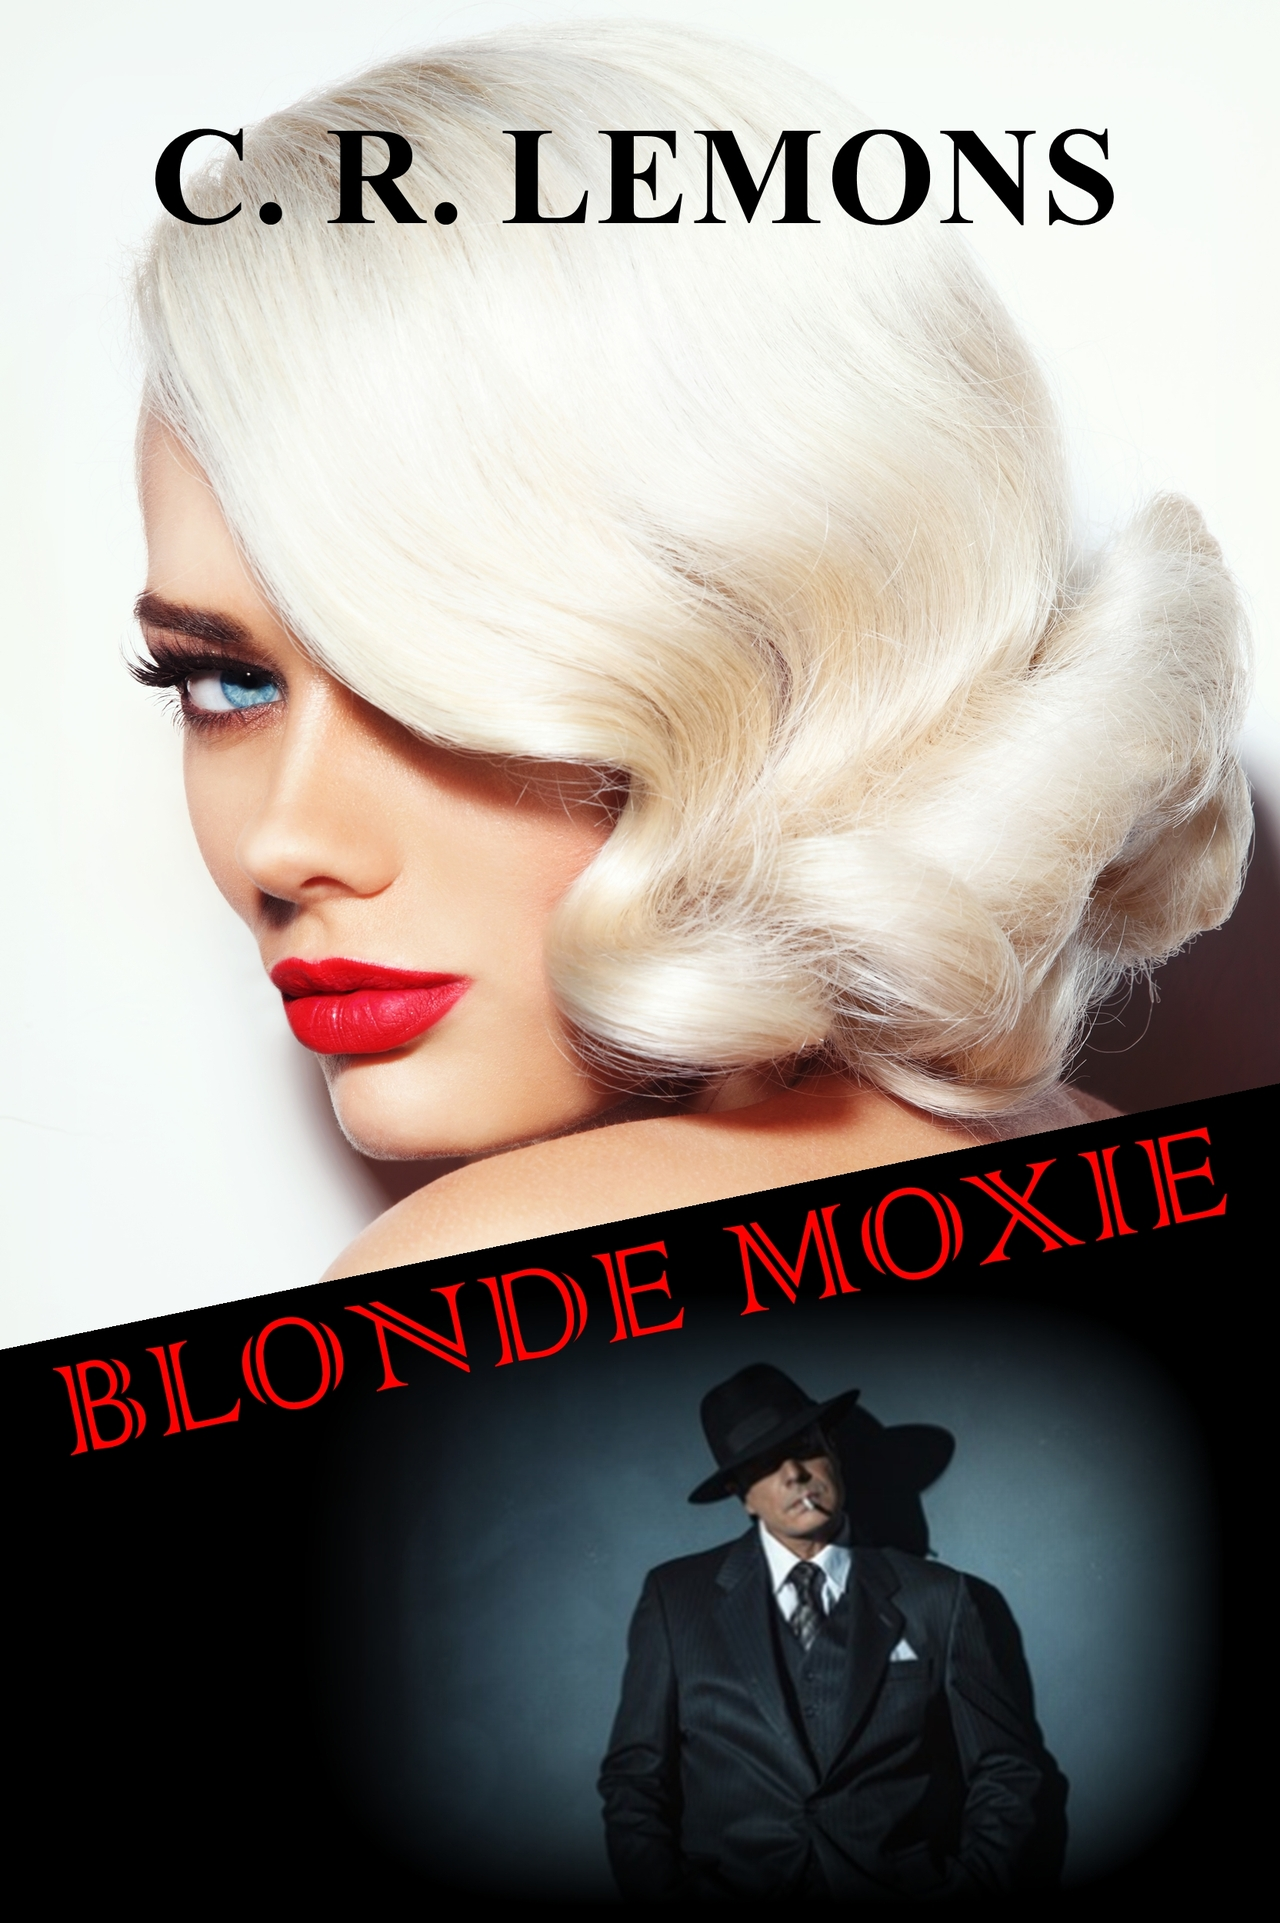 Blonde moxie cover